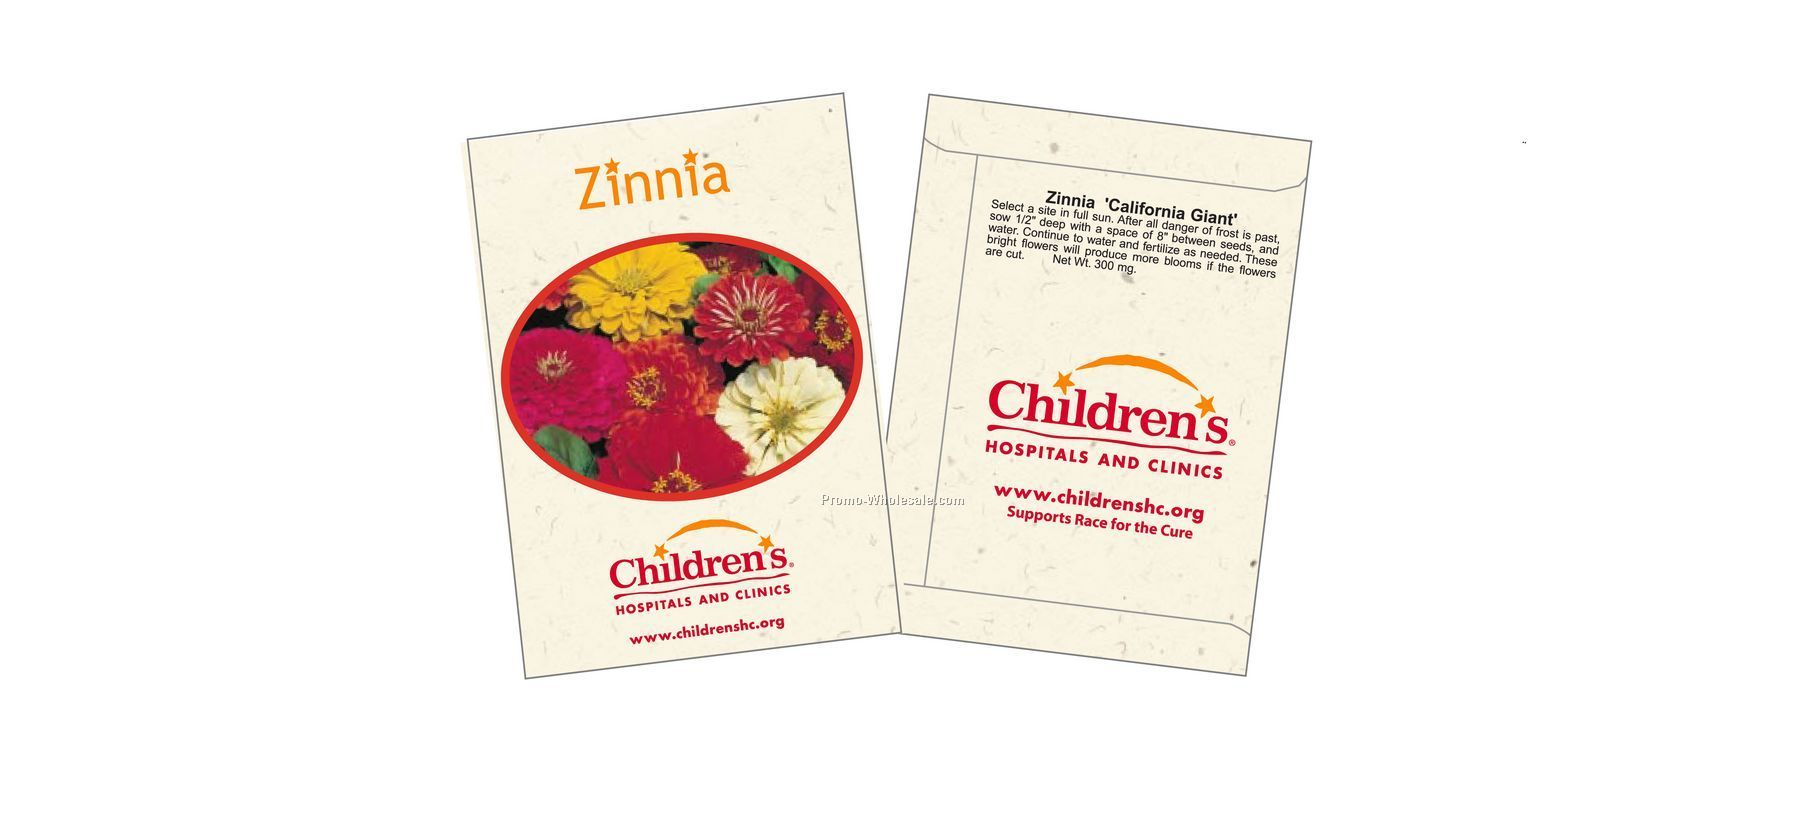 "3-1/4""x4-1/2"" Zinnia - California Giant - Flower Seed Packet (2 Color)"